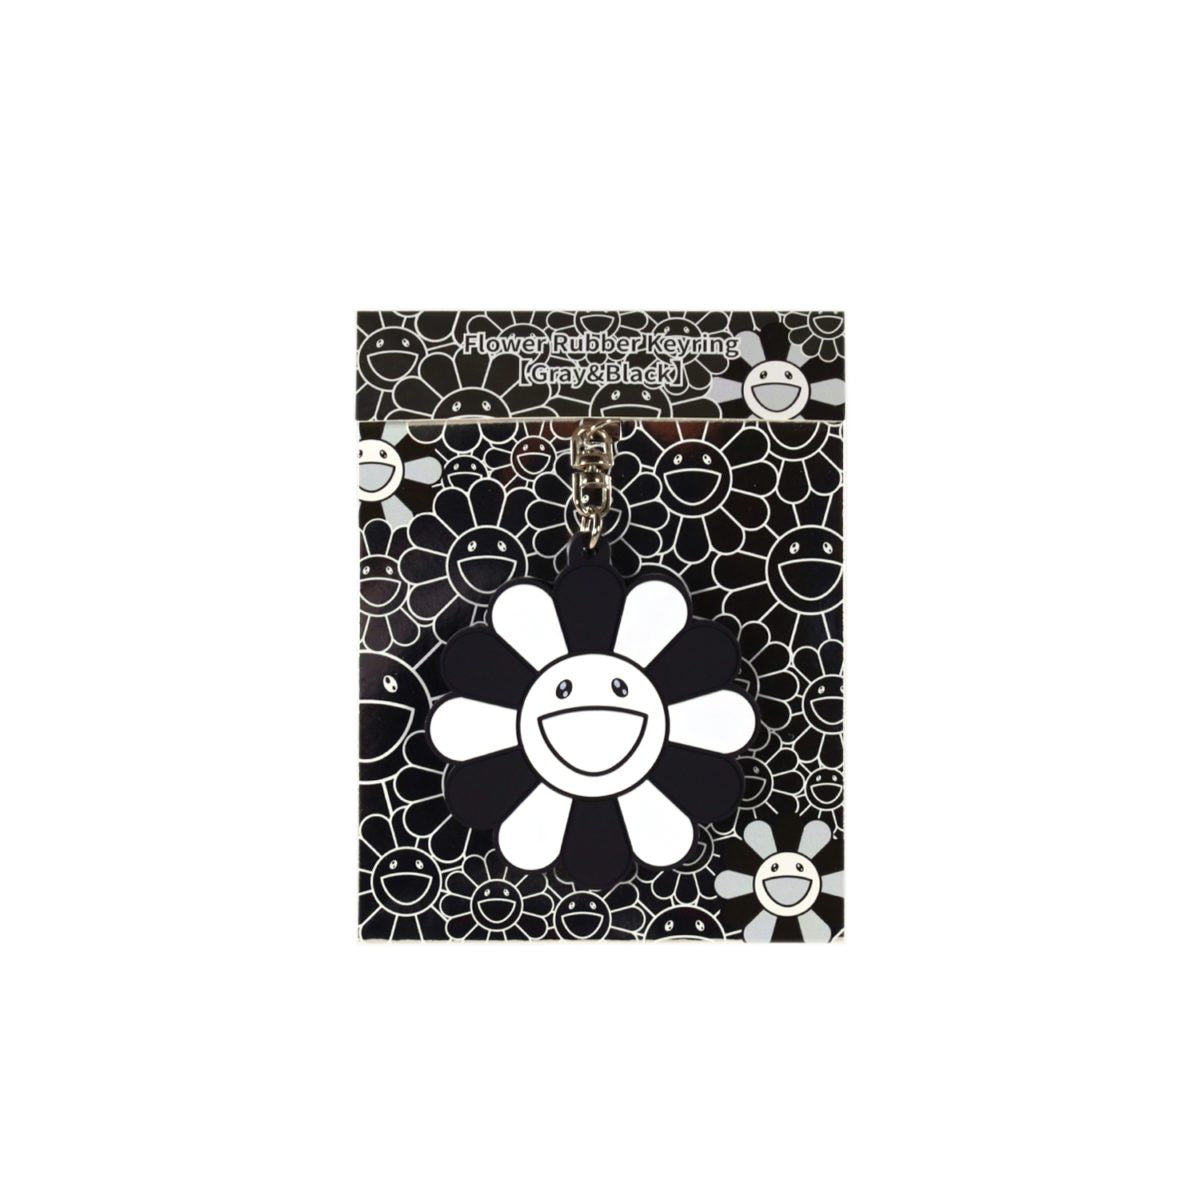 Flower Rubber Keyring (Gray and Black)